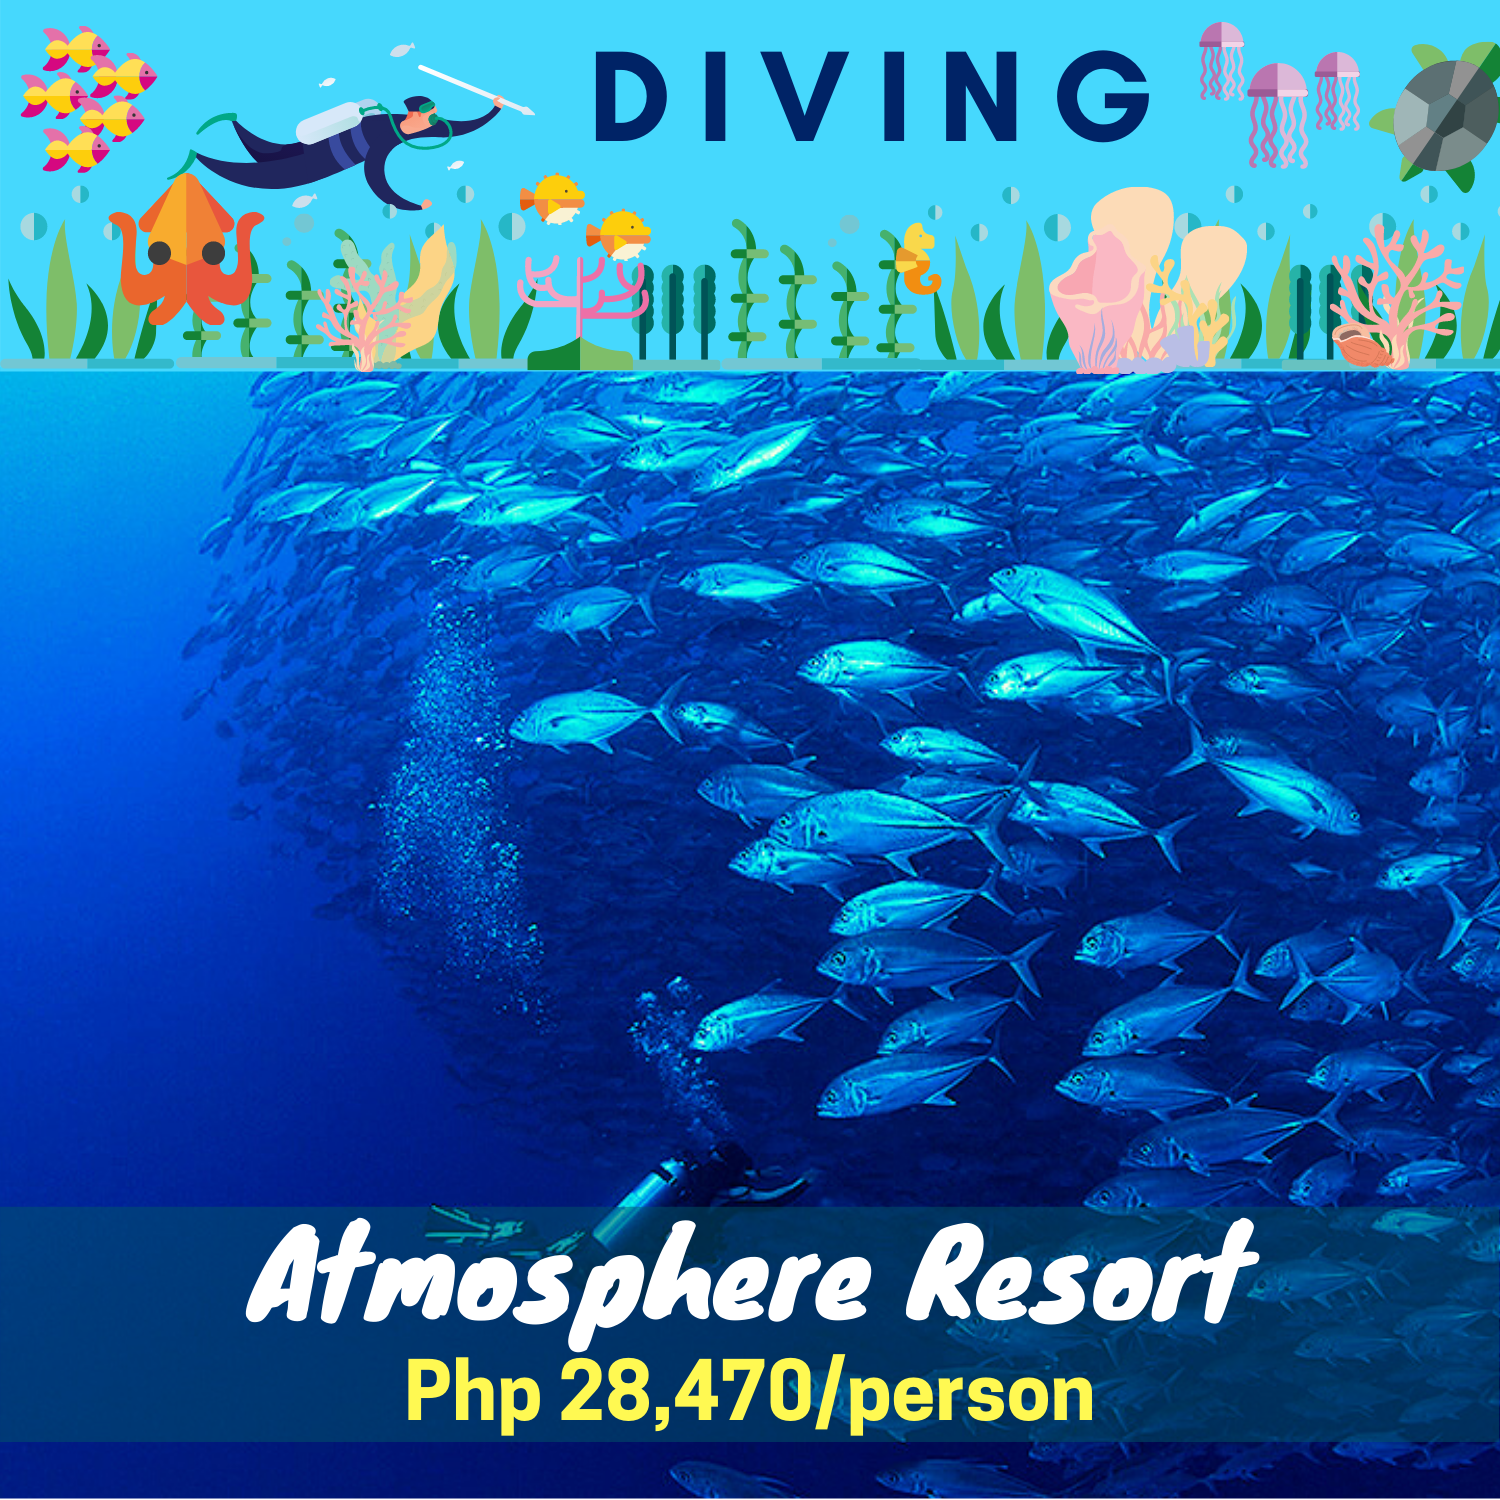 Atmosphere Resort & Spa Diving Package